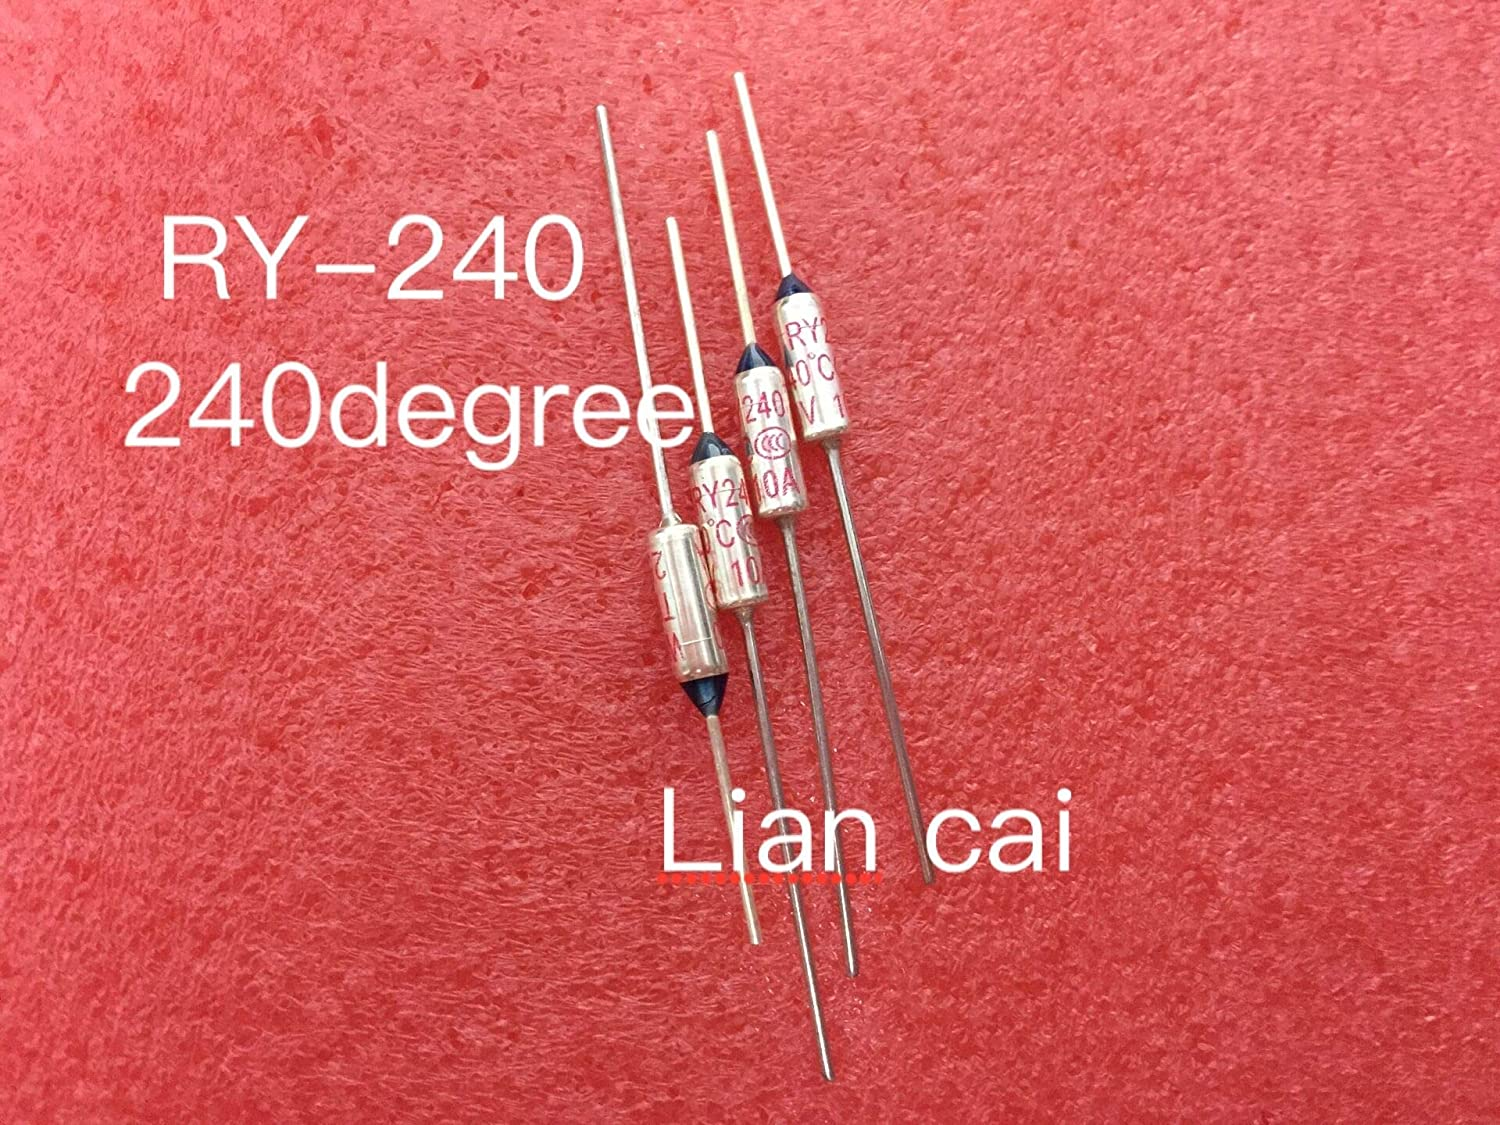 Chavis RY-240 RY Thermal Cutoff TF 240 degree Thermal-Links 10A 250V Temperature Fuse For Electric Rice Cooker x 100PCS